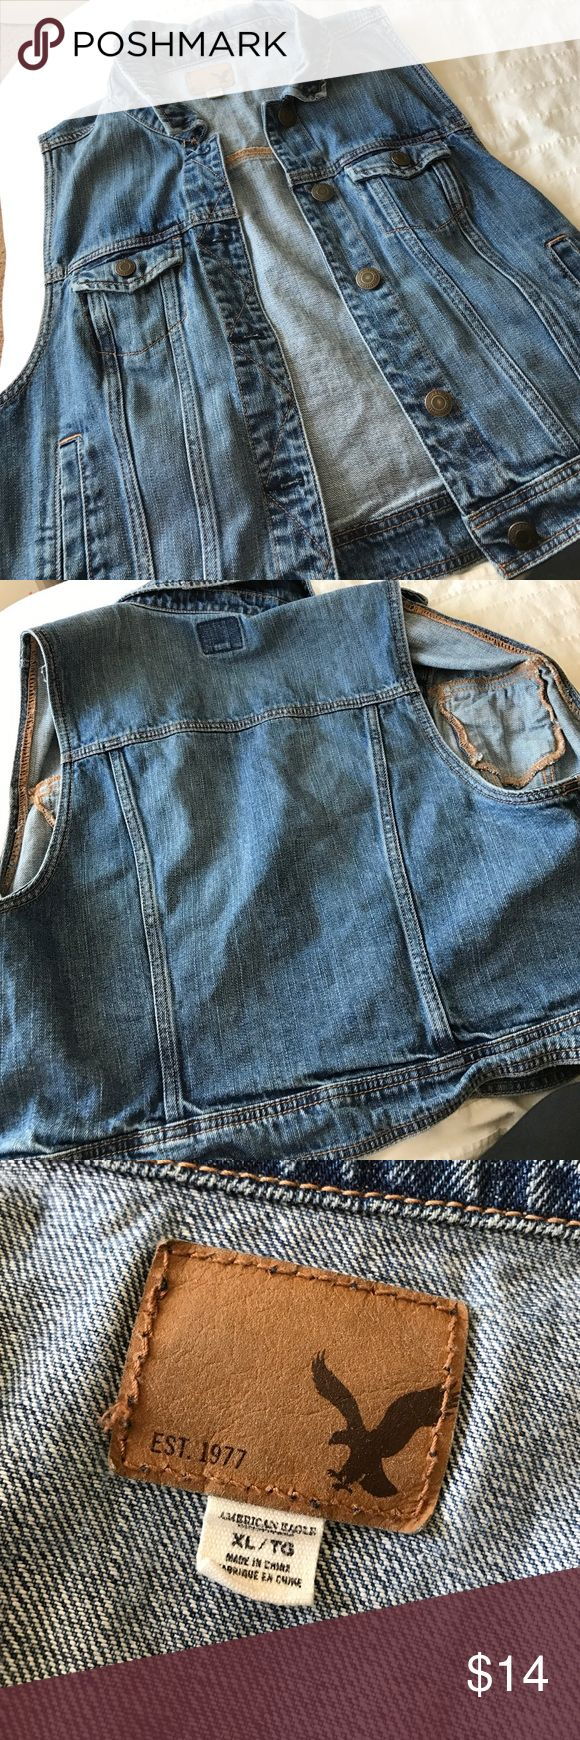 AE Sleeveless Denim Jacket Rarely Worn denim Jacket / perfect for layering American Eagle Outfitters Jackets & Coats Jean Jackets